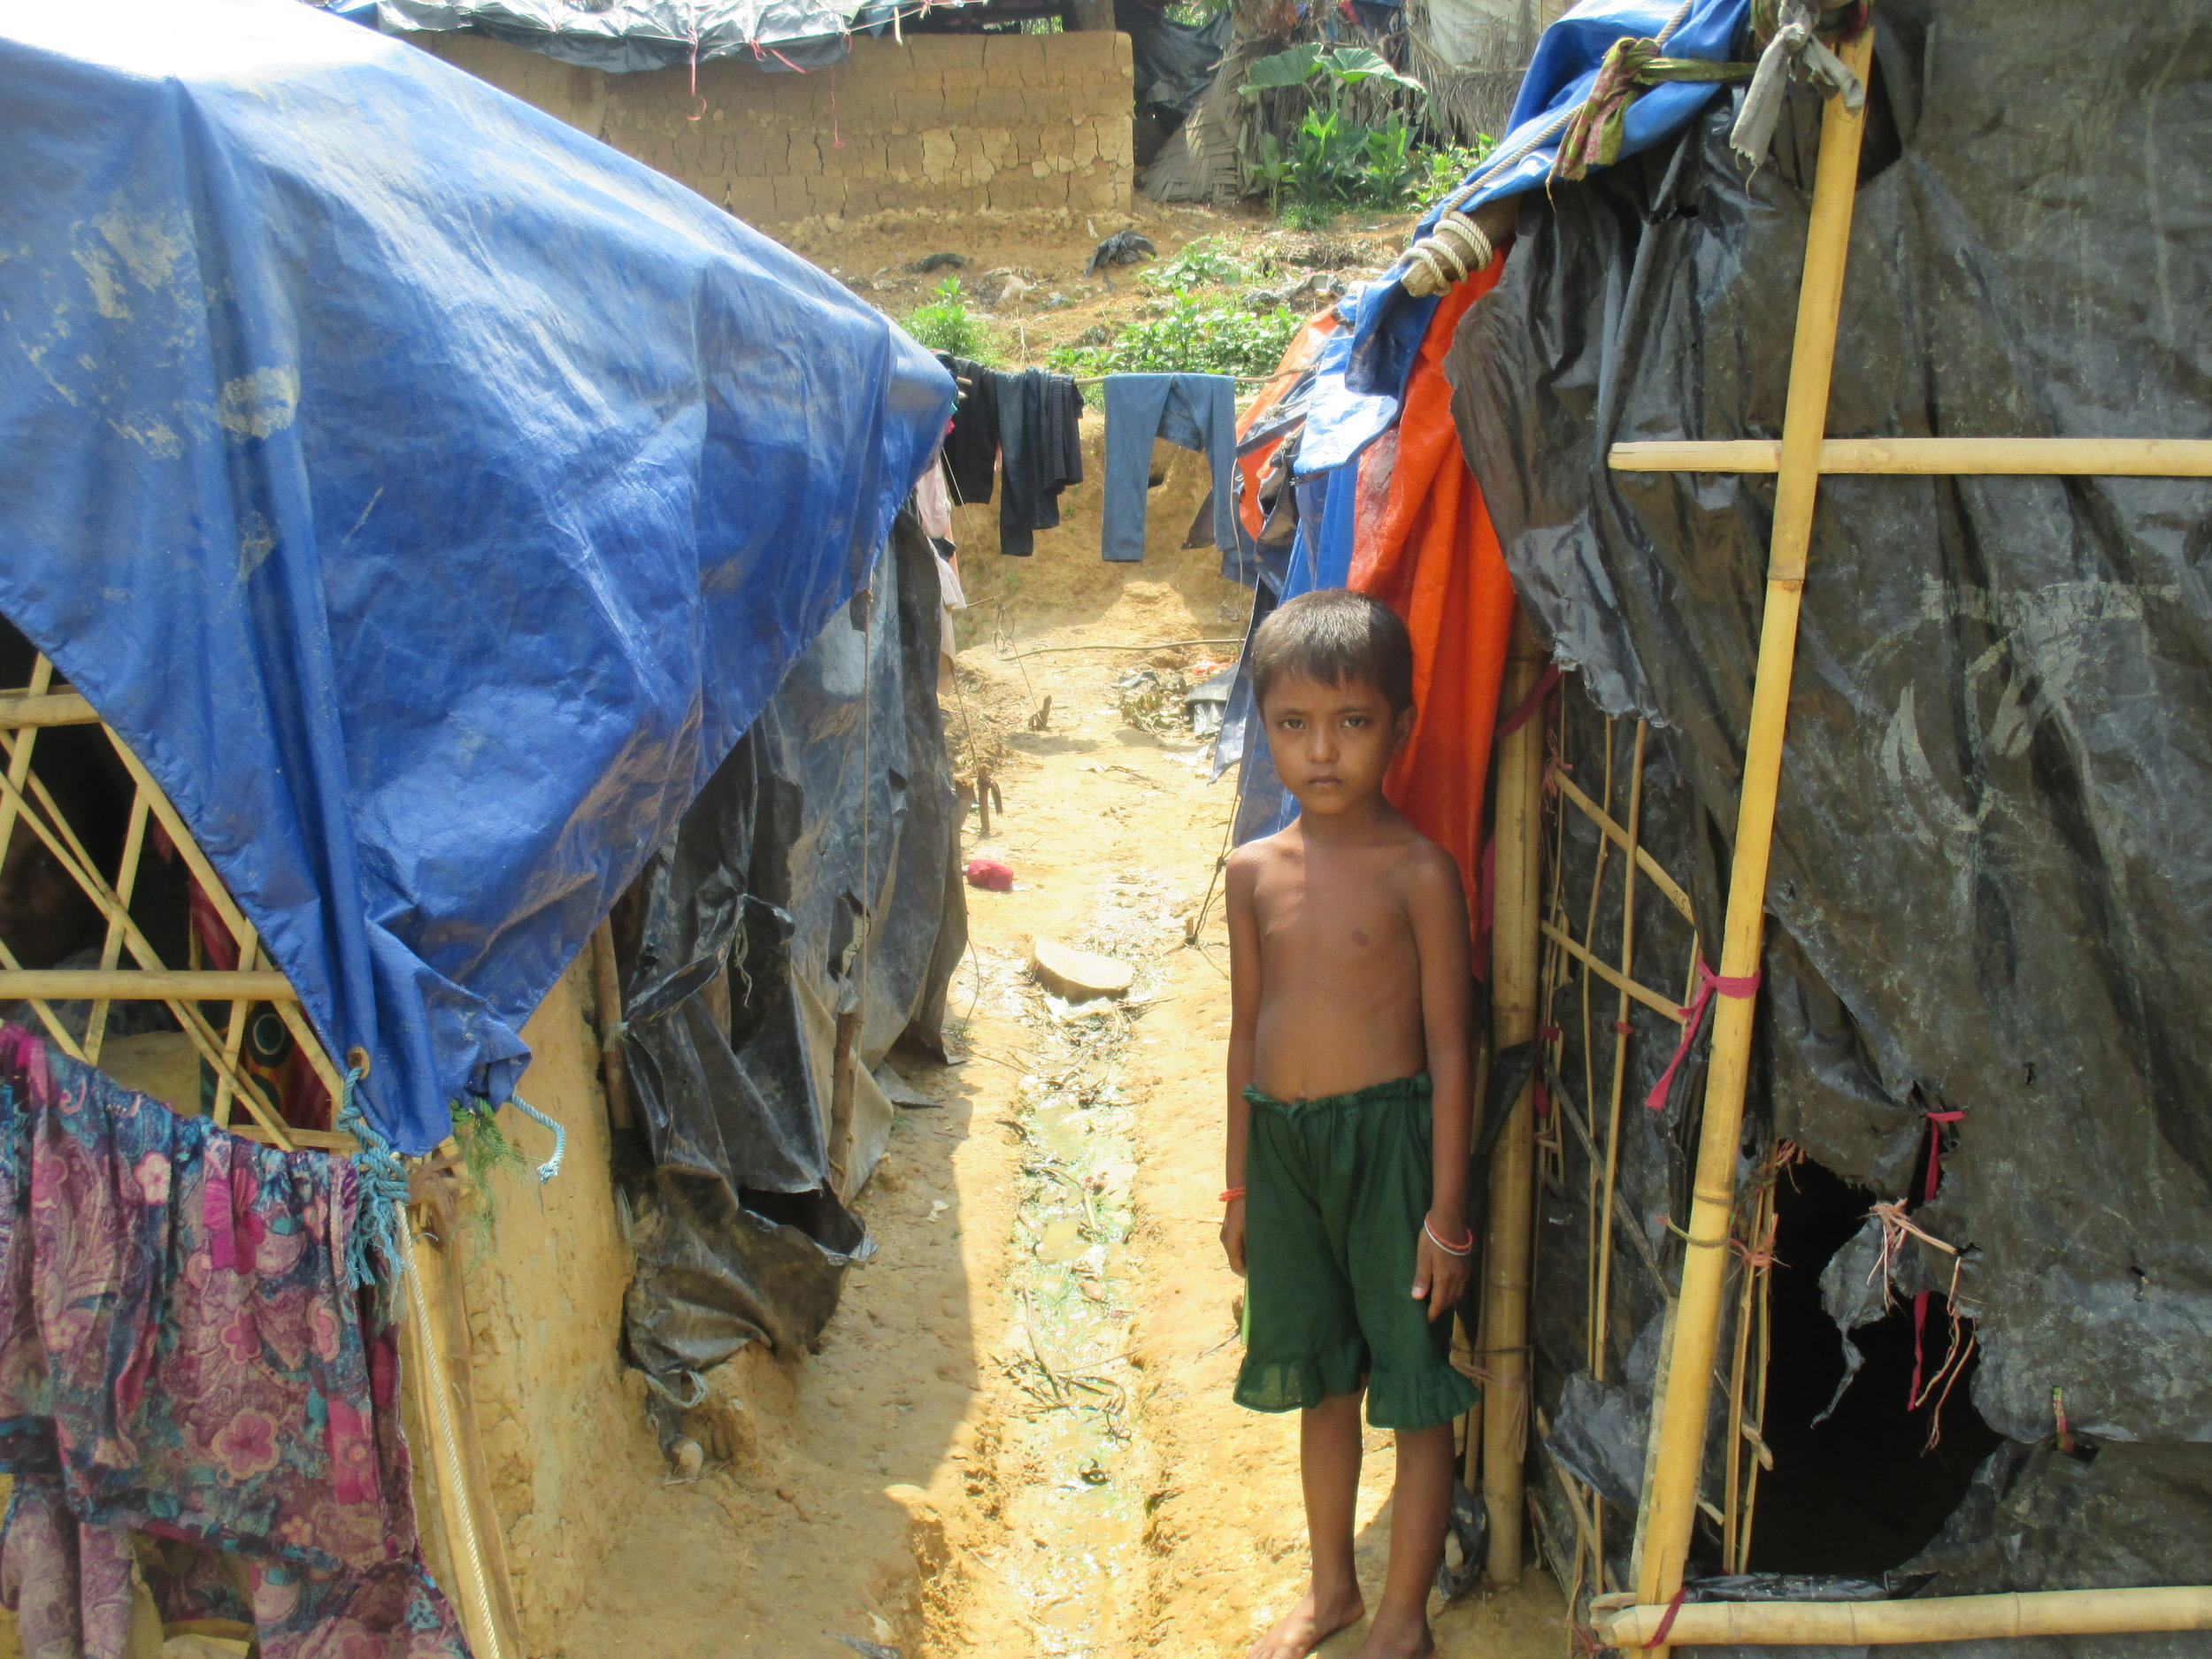 In the immediate term, shelters need to be reinforced and emergency food provided to refugees. In the longer term, the root causes of the Rohingya exodus must be addressed in Myanmar, including an end to abuses, accountability for those abuses that have taken place, through the UN Fact-Finding Mission, and reforming the 1982 Citizenship Law to allow Rohingya, who have lived in Myanmar for generations, a path to citizenship.